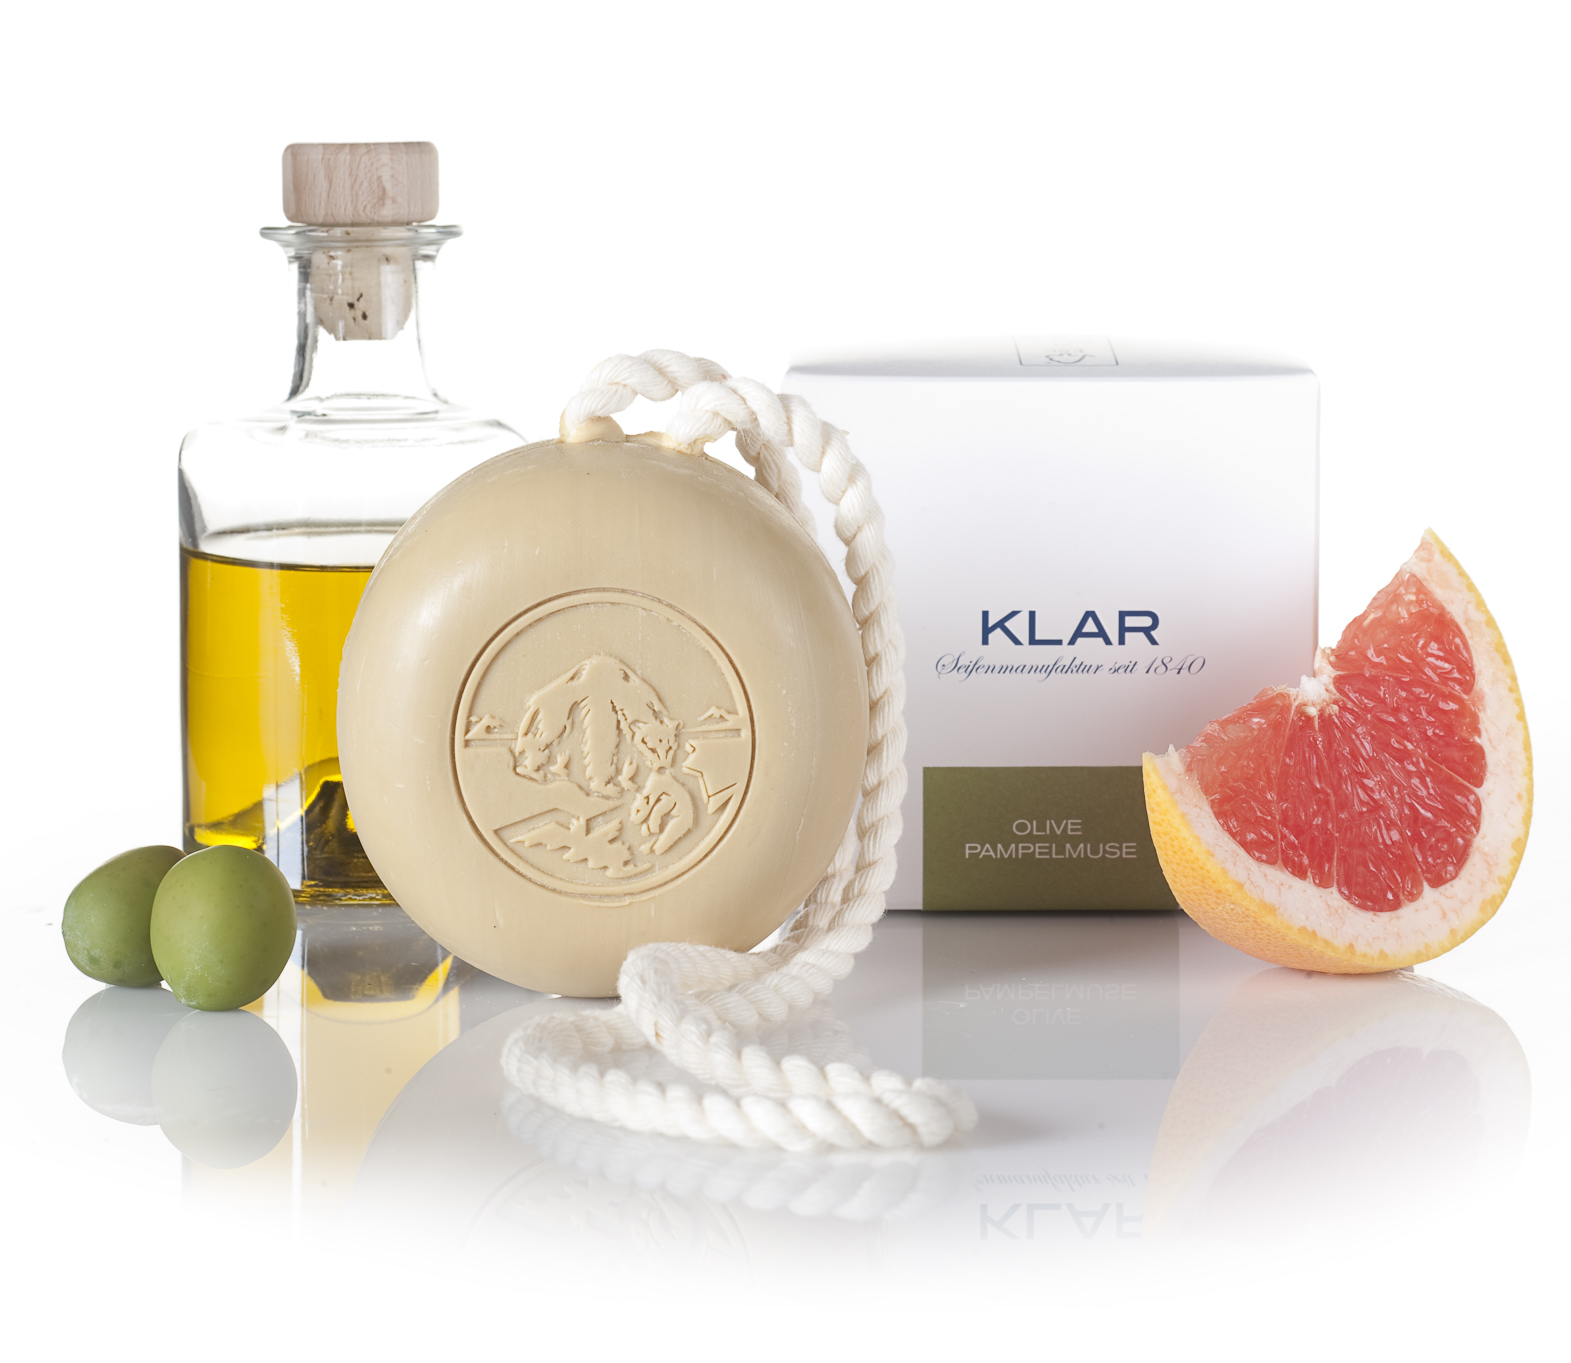 Klar Olive & Grapefruit Hair and Body Soap on a Rope 250g